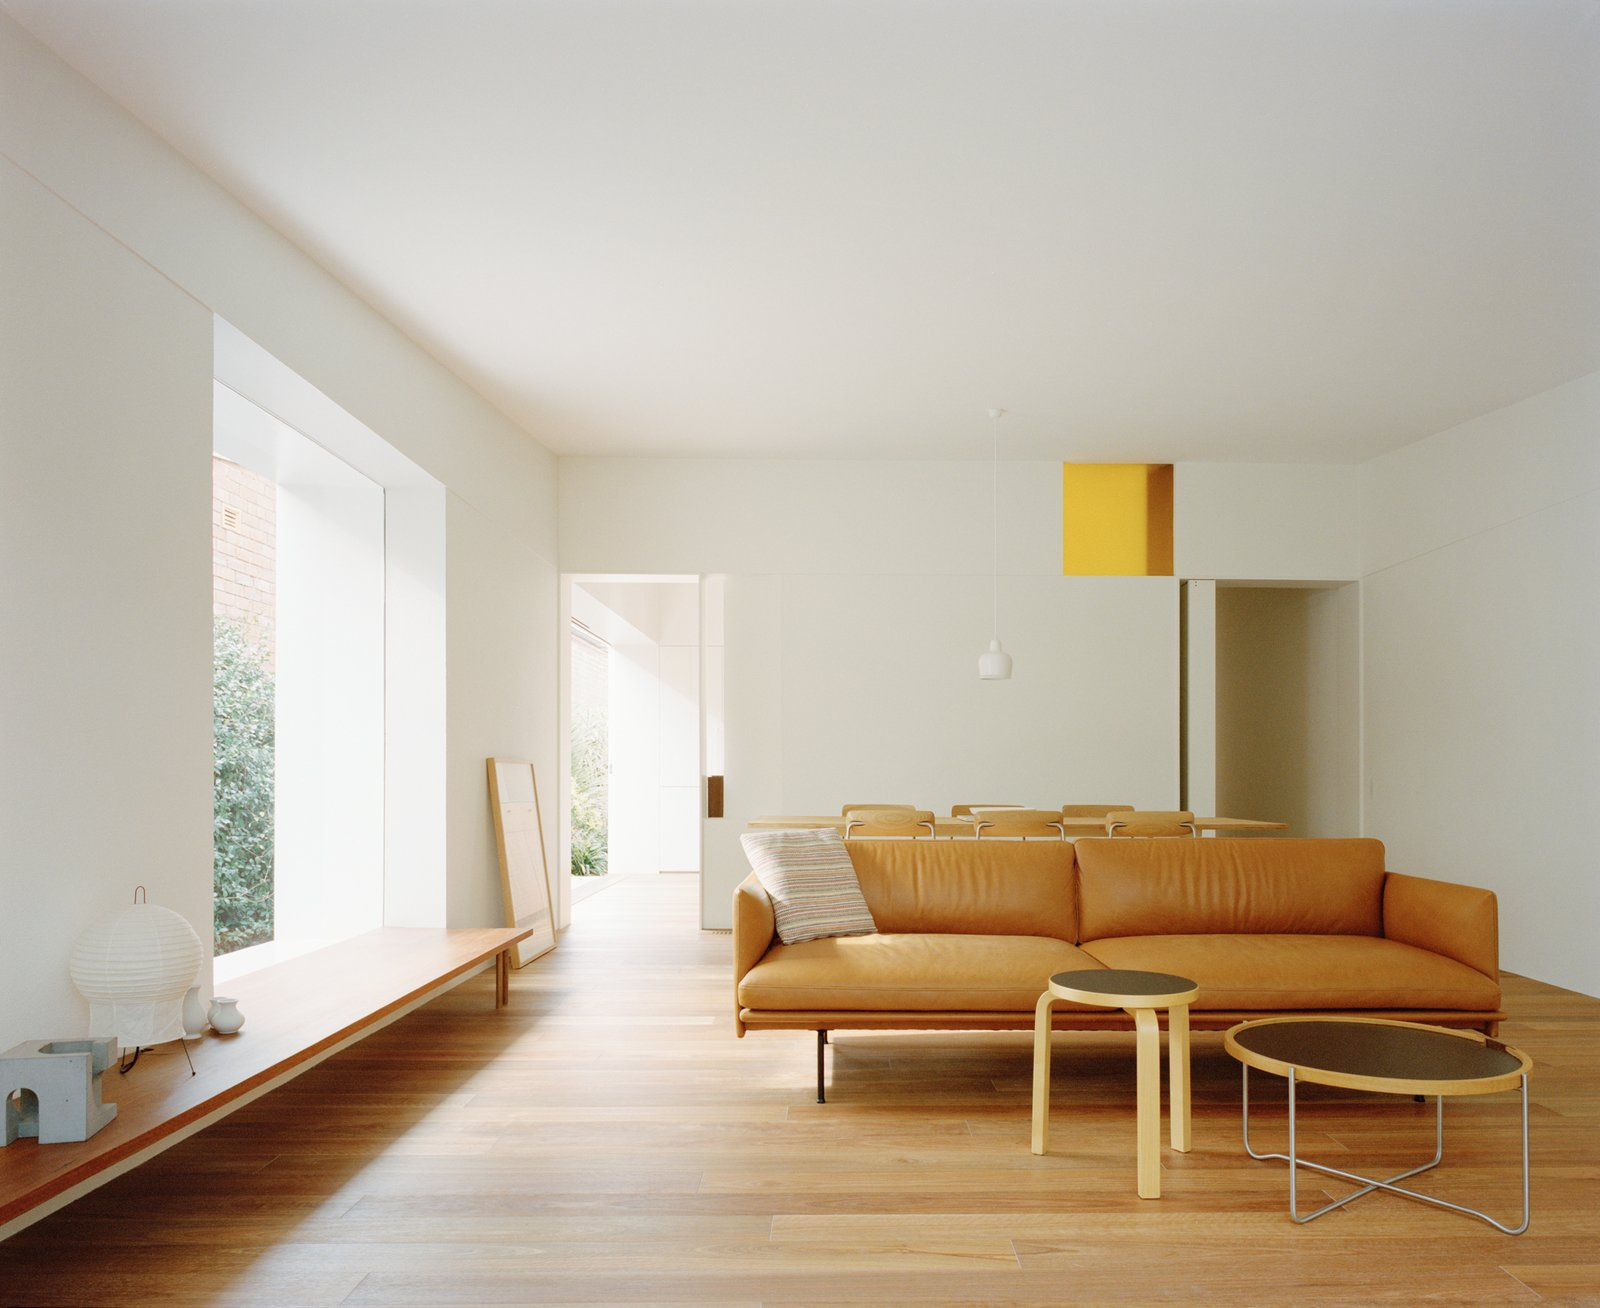 Living area of JJ House by Bokey Grant